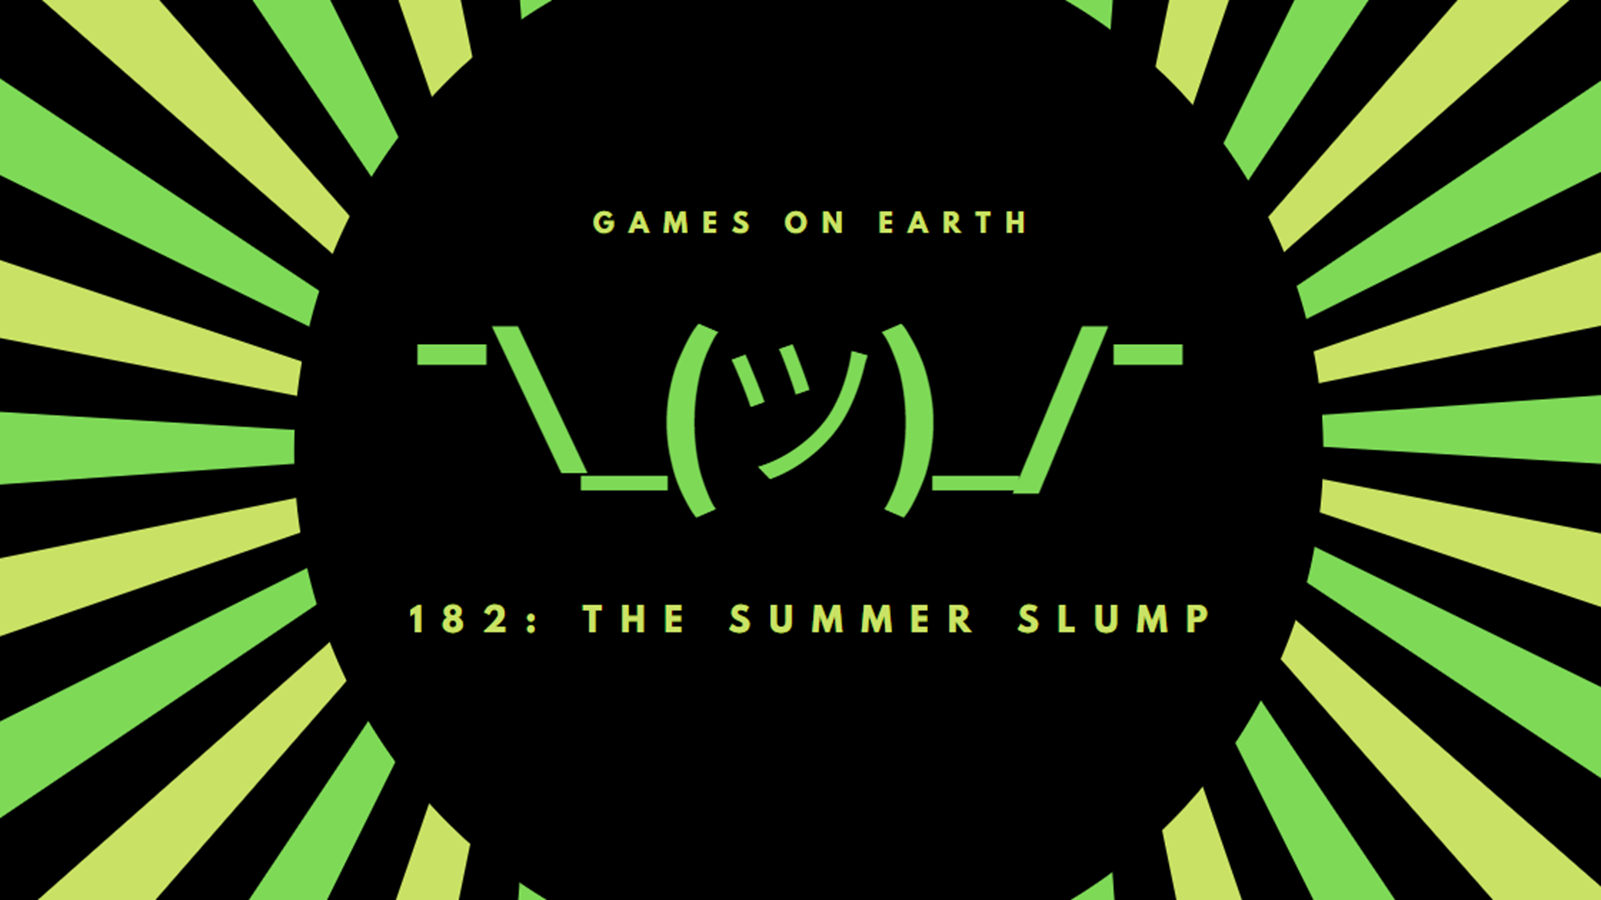 This week we're rocking some low energy. Sorry, this post-E3 time is so strange. As is having a new PC without being sure which games you want to play. LEDs are cool right?  We'll do better next week.  Thanks to Kyle Landstra for the Intro/outro music